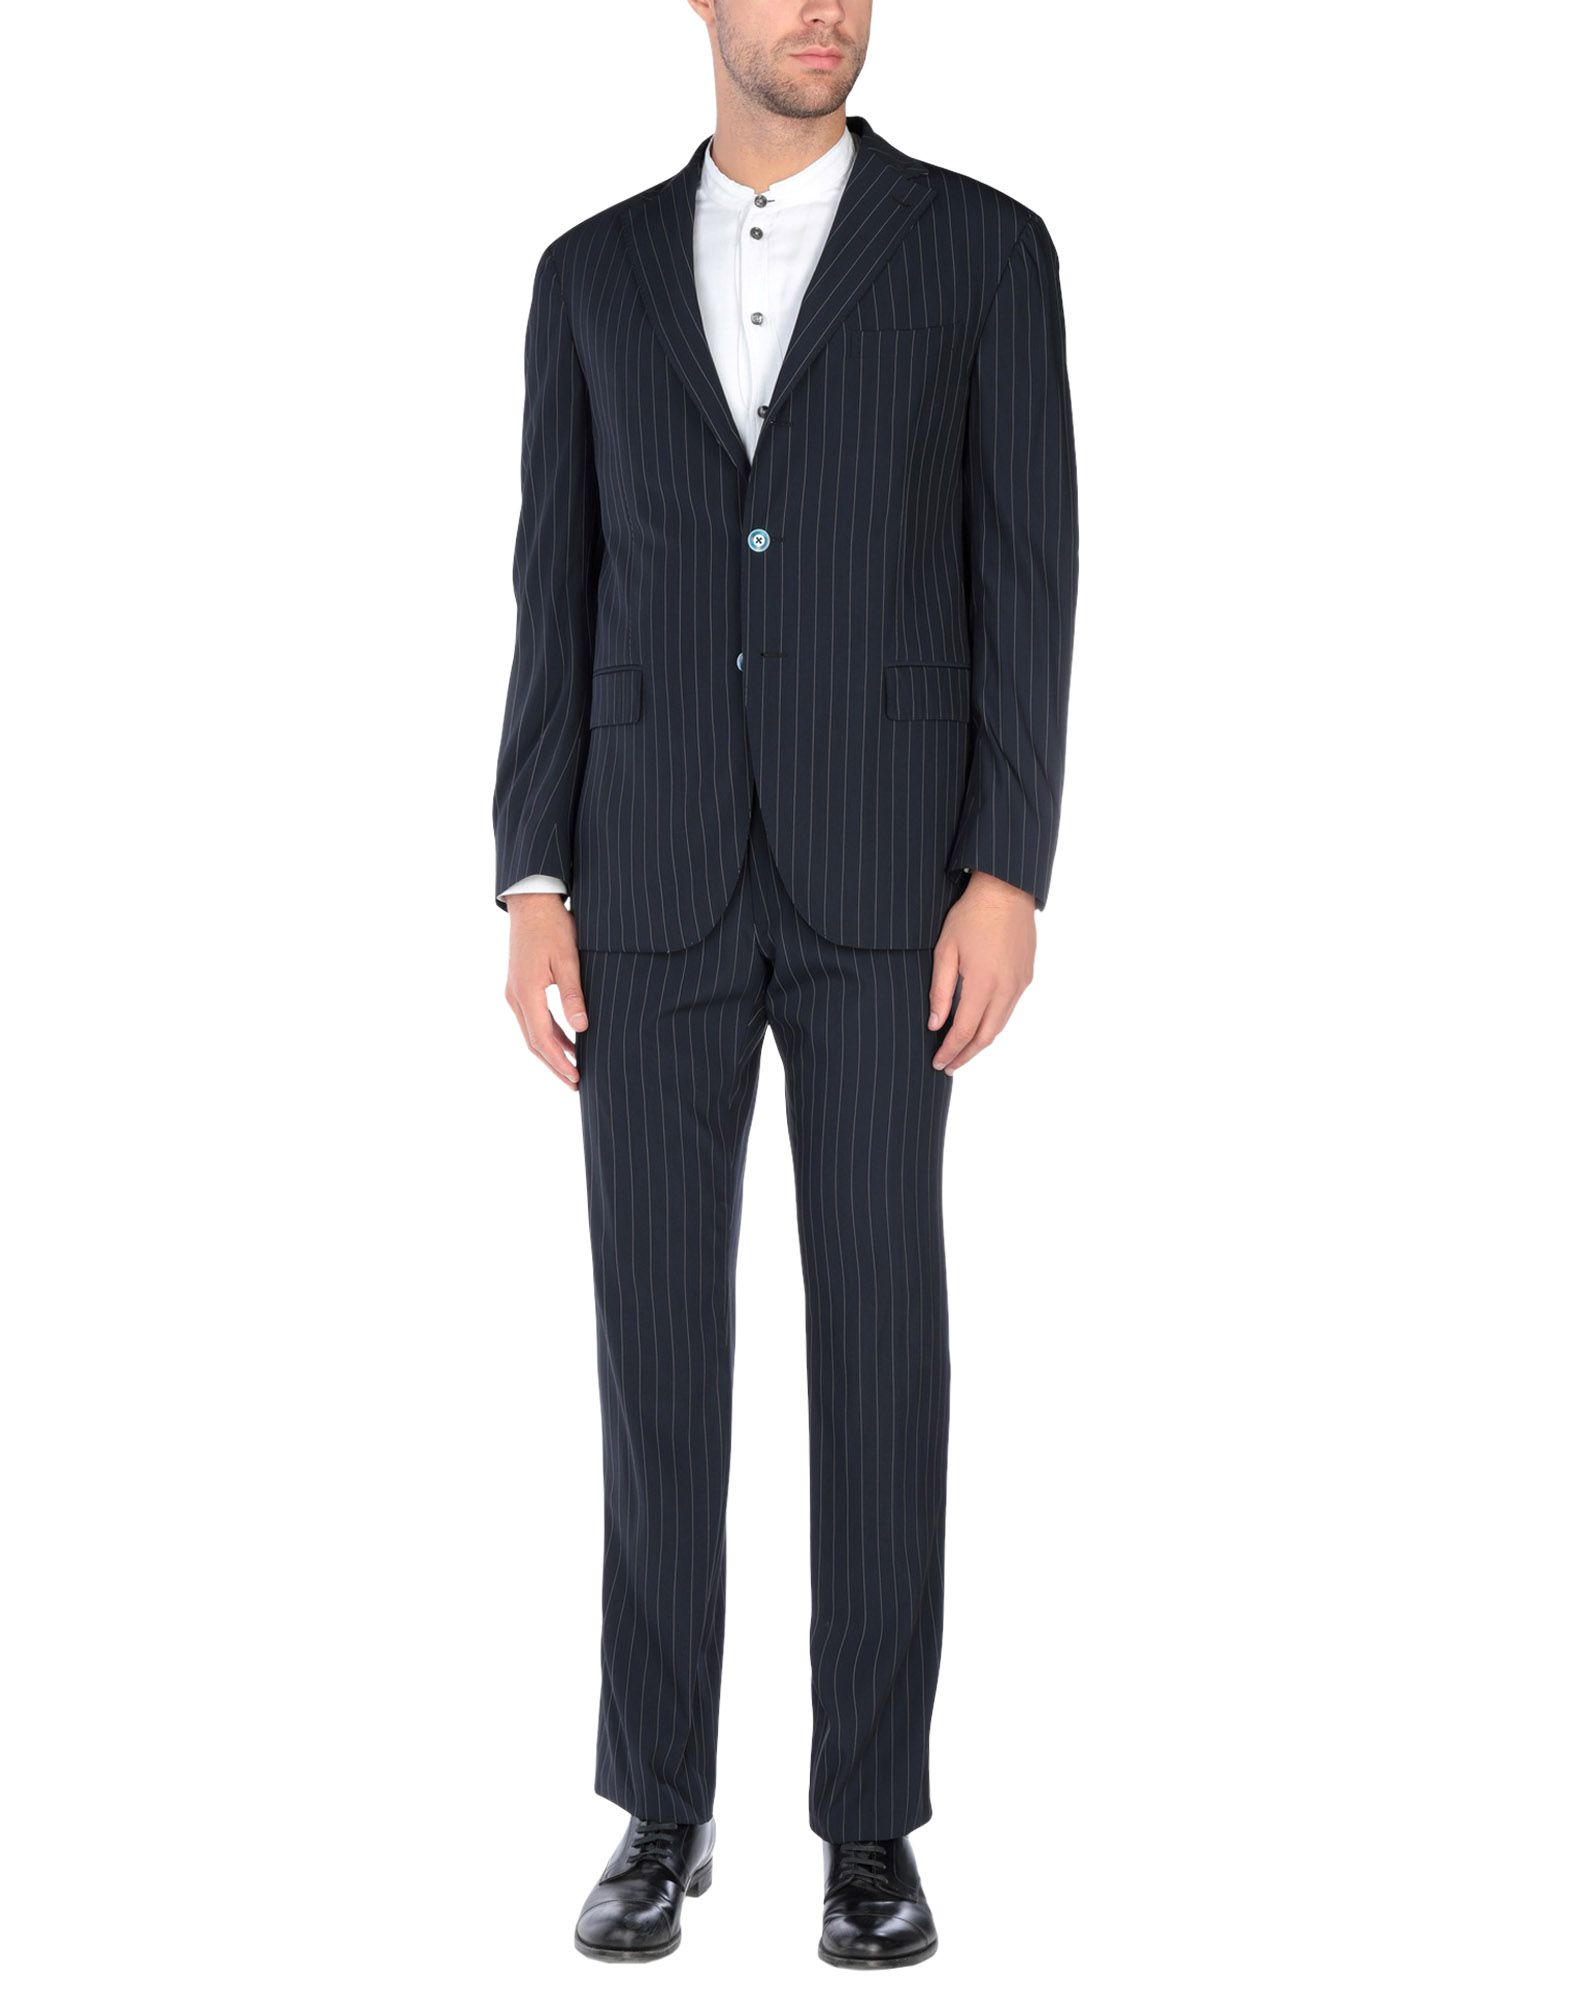 ABSOLUTE LIGHT JACKET BY CANTARELLI | ABSOLUTE LIGHT JACKET BY CANTARELLI Suits | Goxip